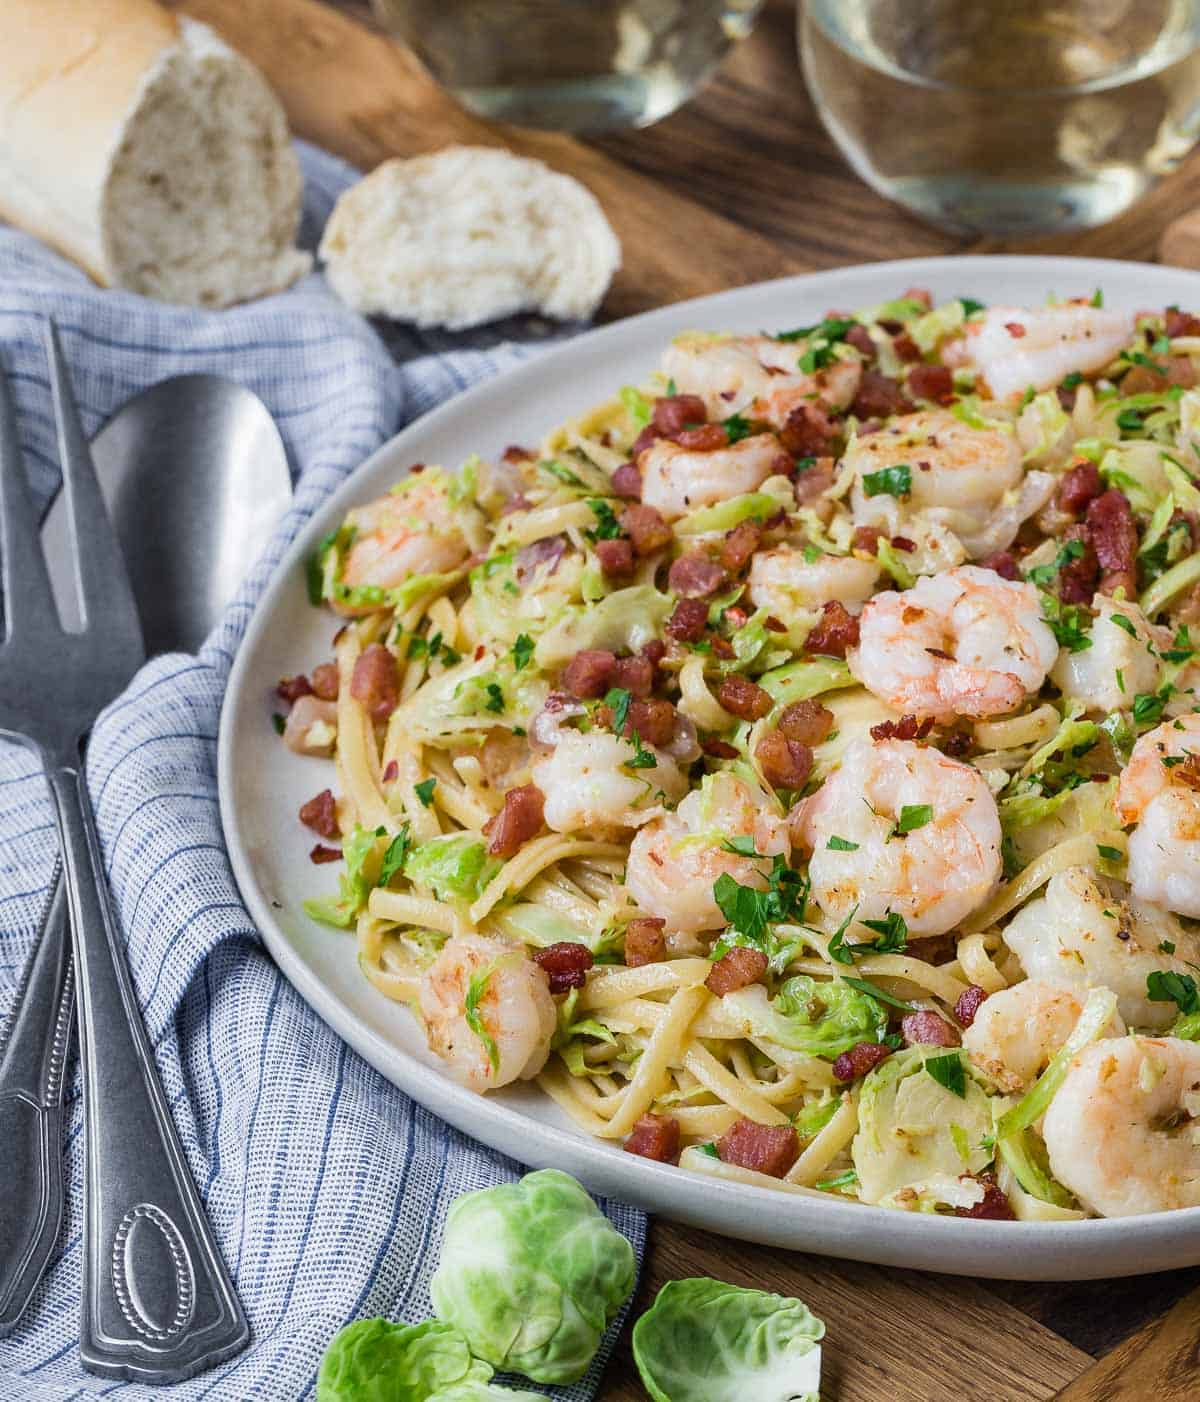 A large serving plate of pasta with brussels sprouts and shrimp. Bread and wine in background.